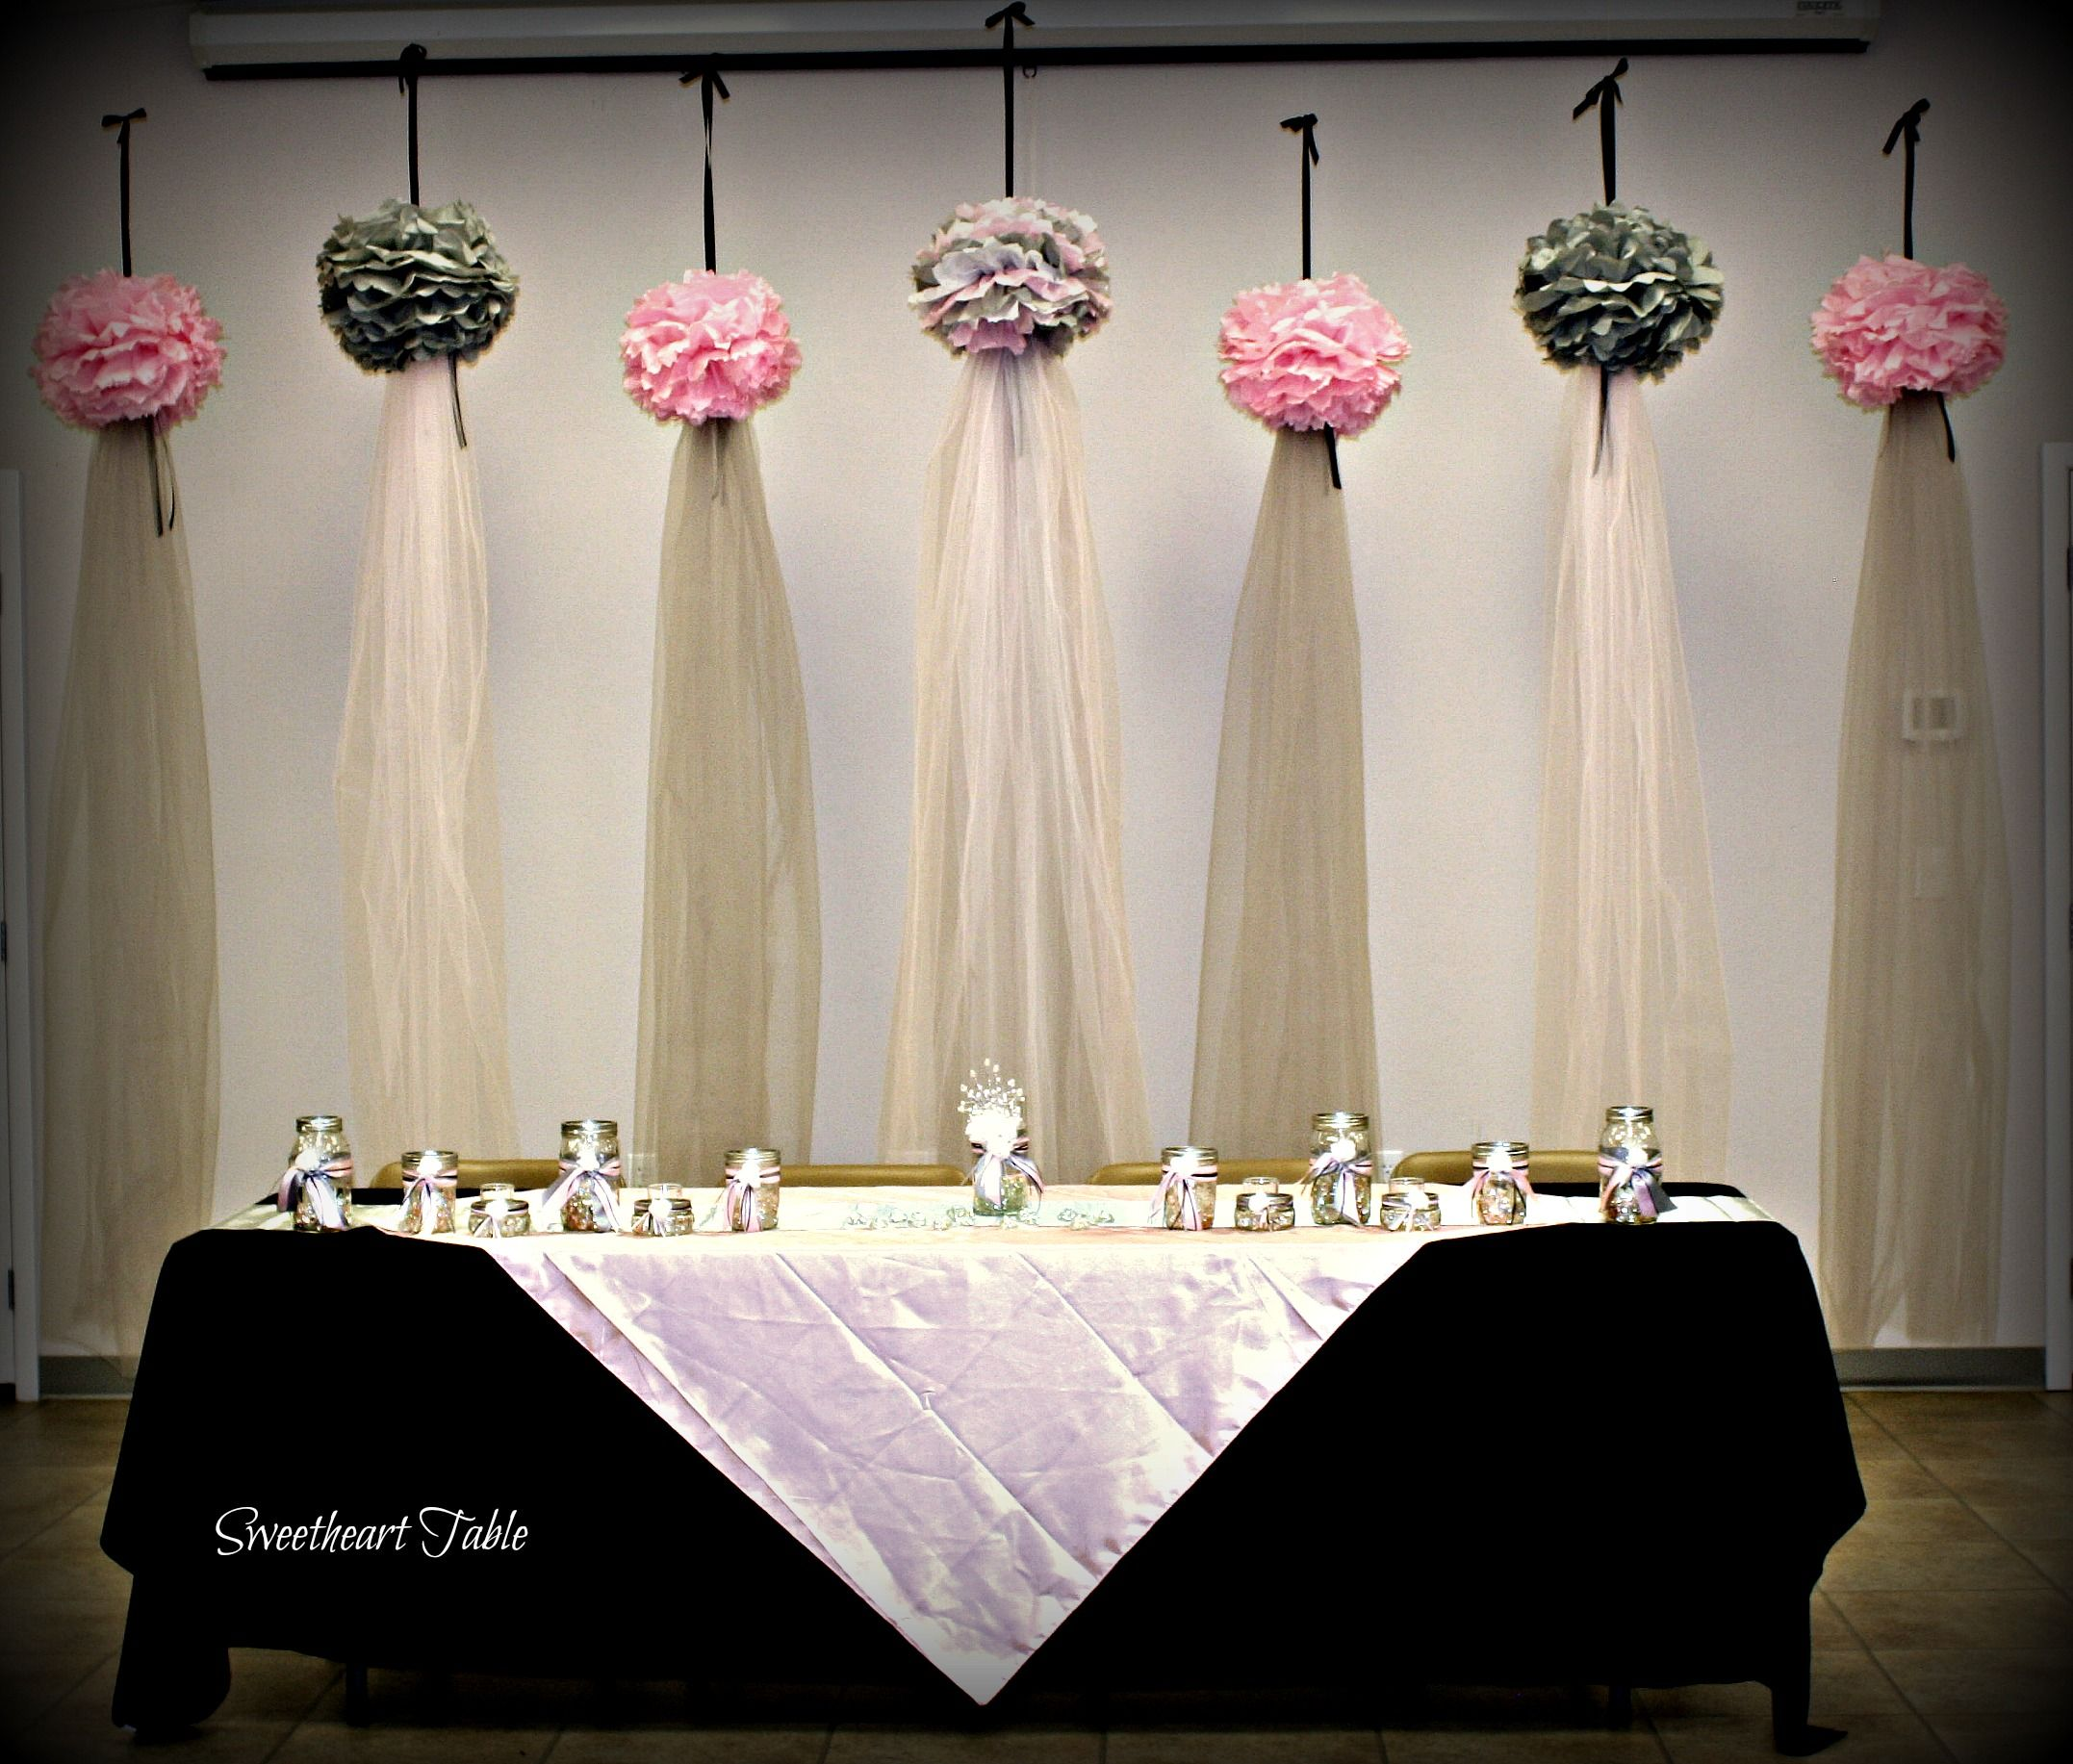 100 Yards Tulle Wedding Backdrop Wedding Decoration 15cm: Floating Pompoms With Tulle Draping Made An Unique